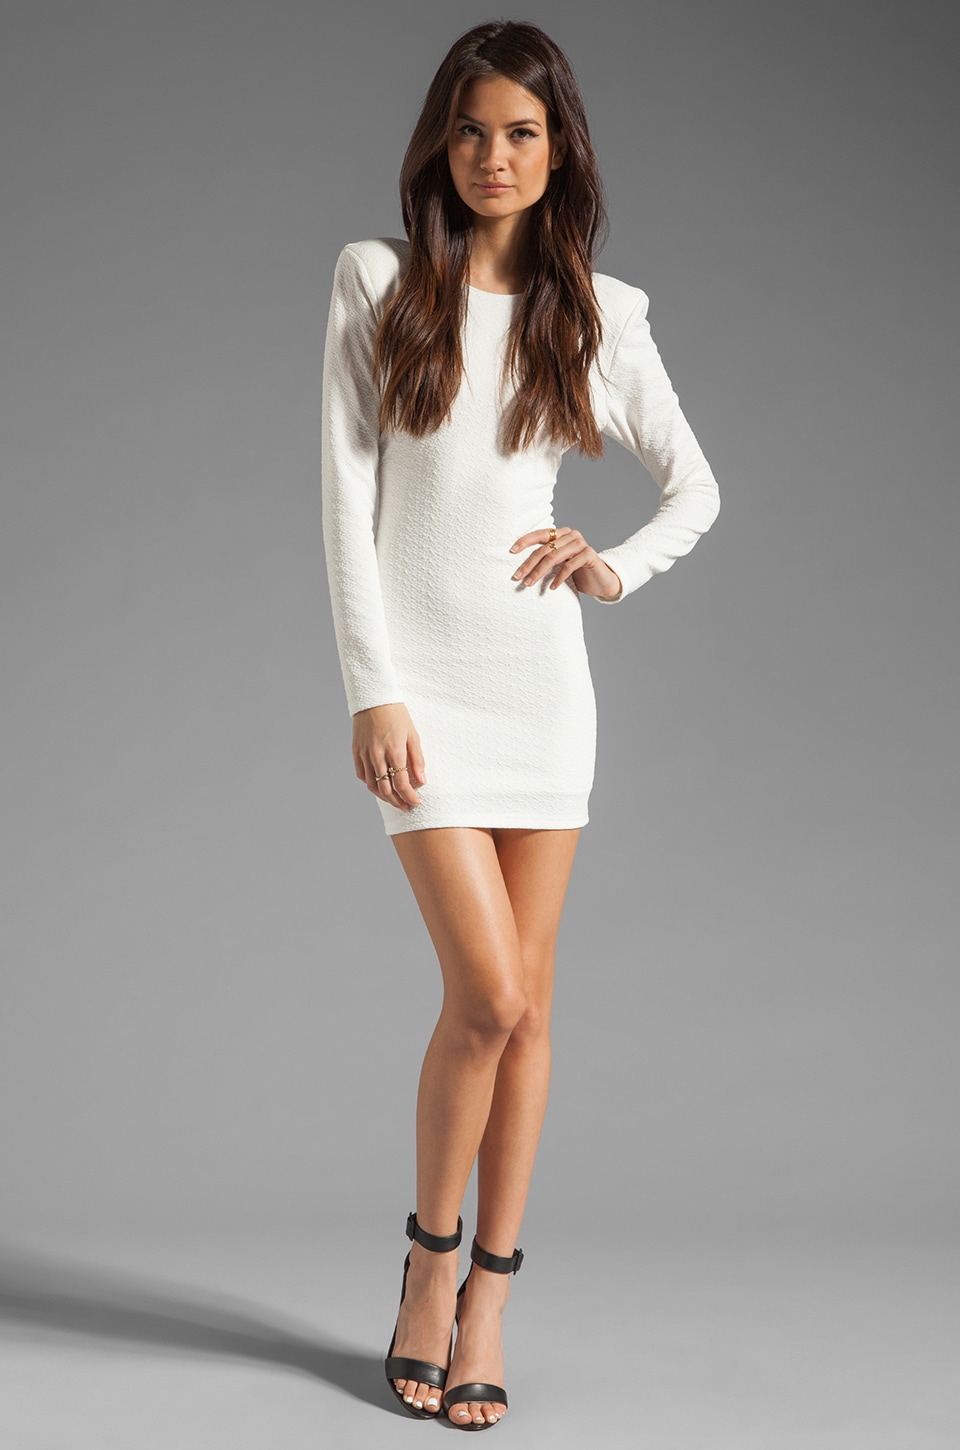 Backstage Long Sleeve Caroline Dress in Ivory